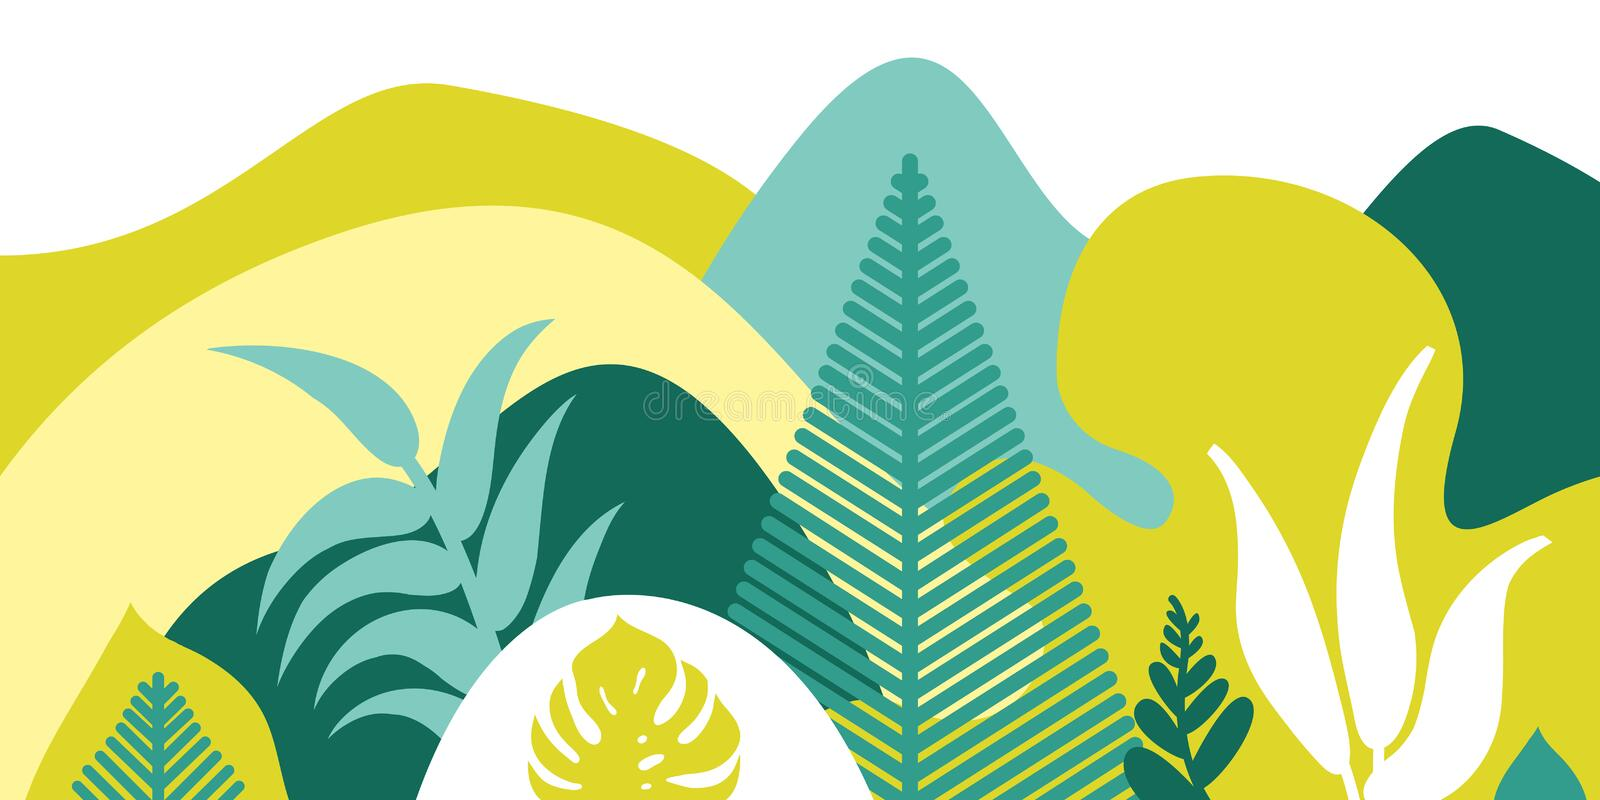 Mountain hilly landscape with tropical plants and trees, palms, succulents. Asian landscape in warm pastel colors. Scandinavian style. Environmental protection royalty free illustration